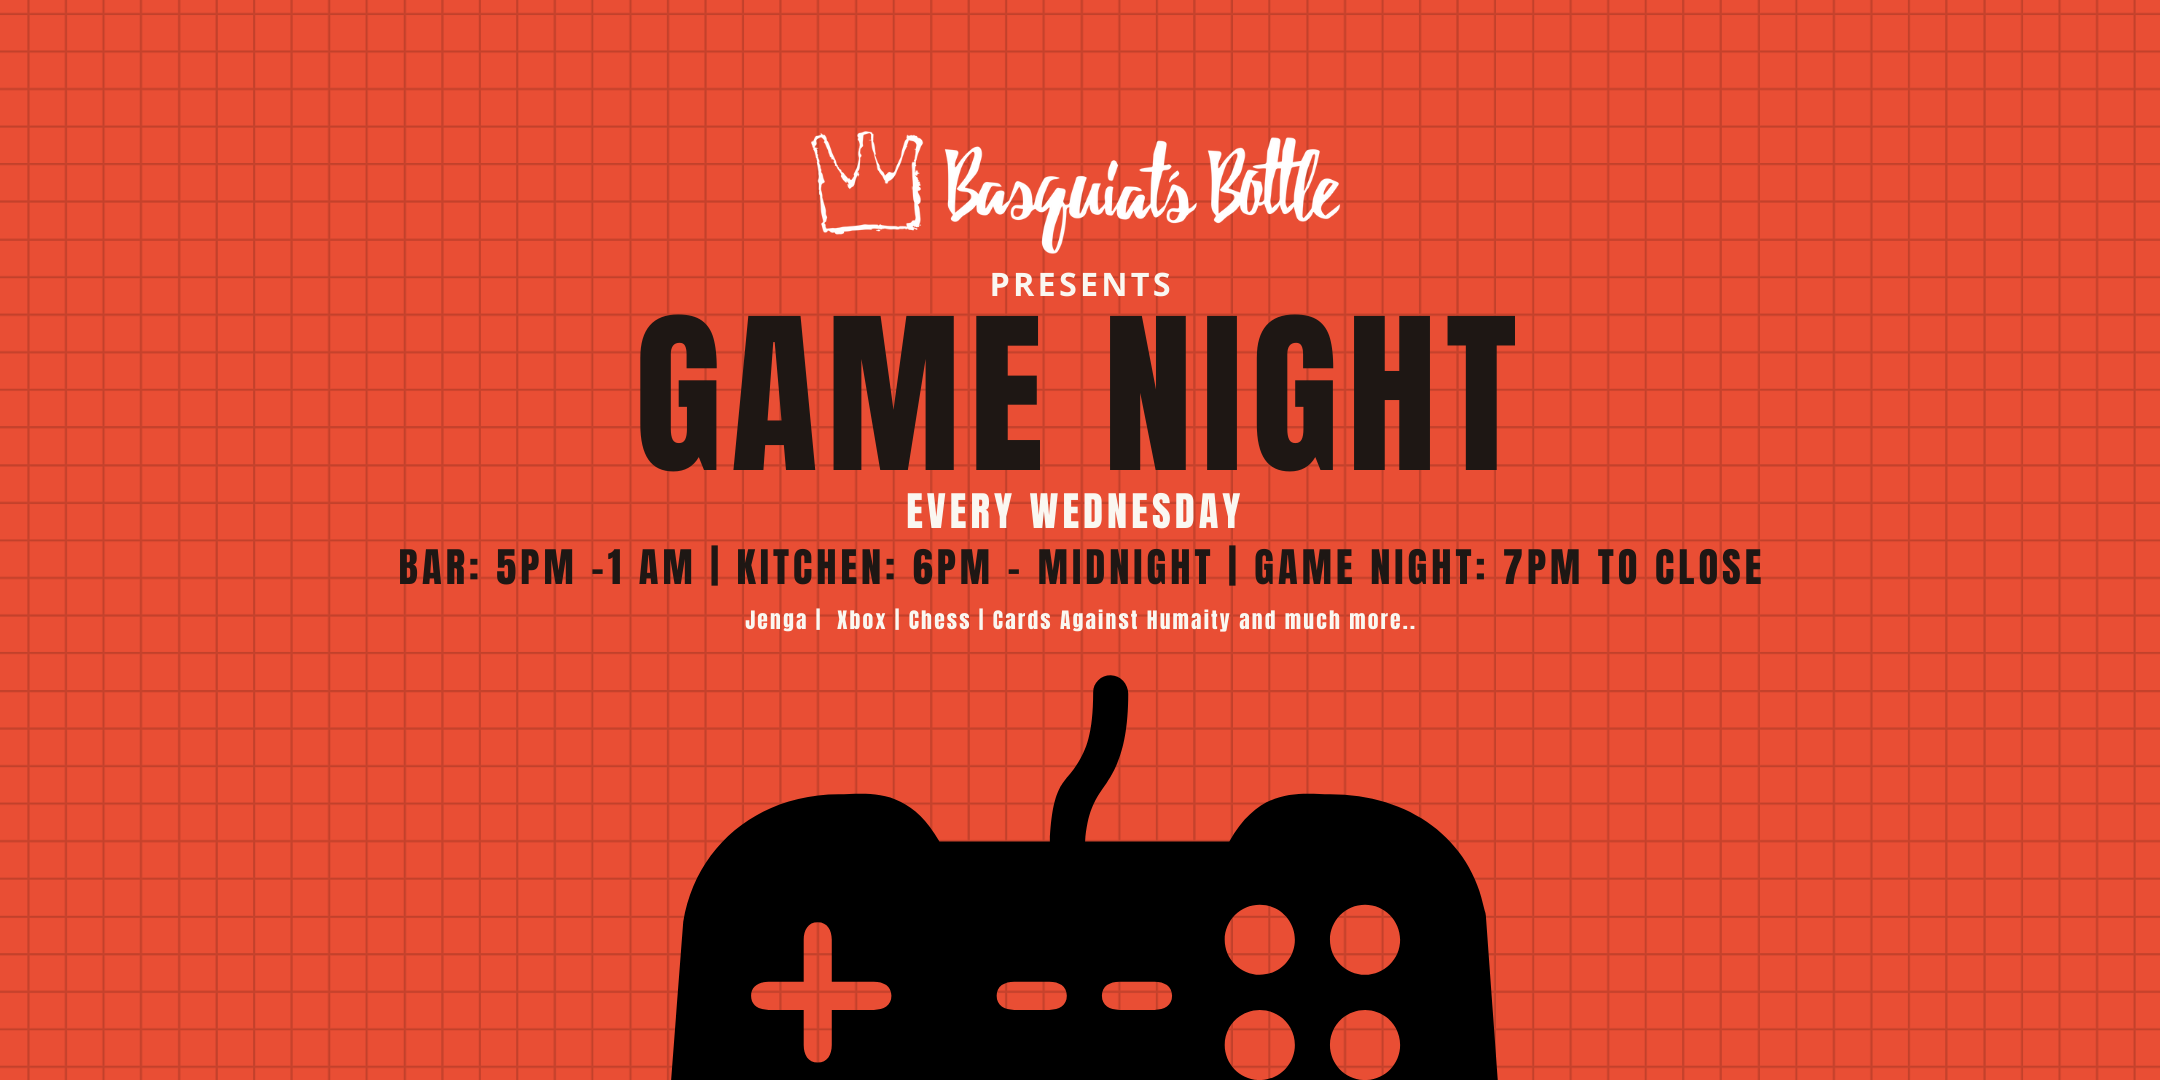 Basquiat's Bottle Presents Game Night